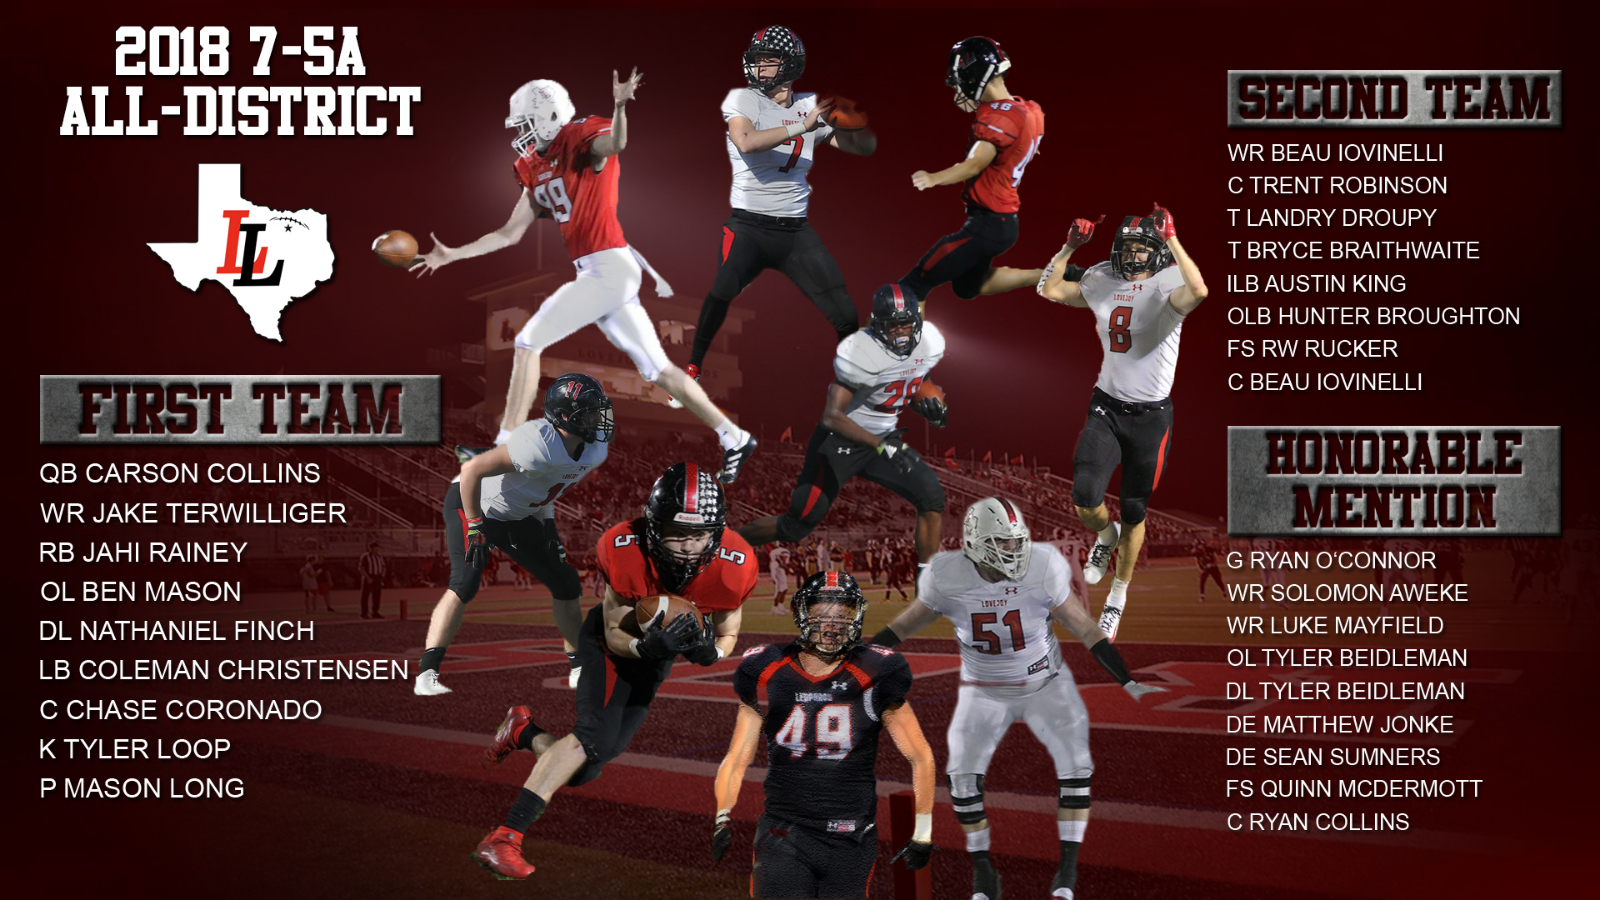 Leopards selected to 2018 7-5A All-District Football Team